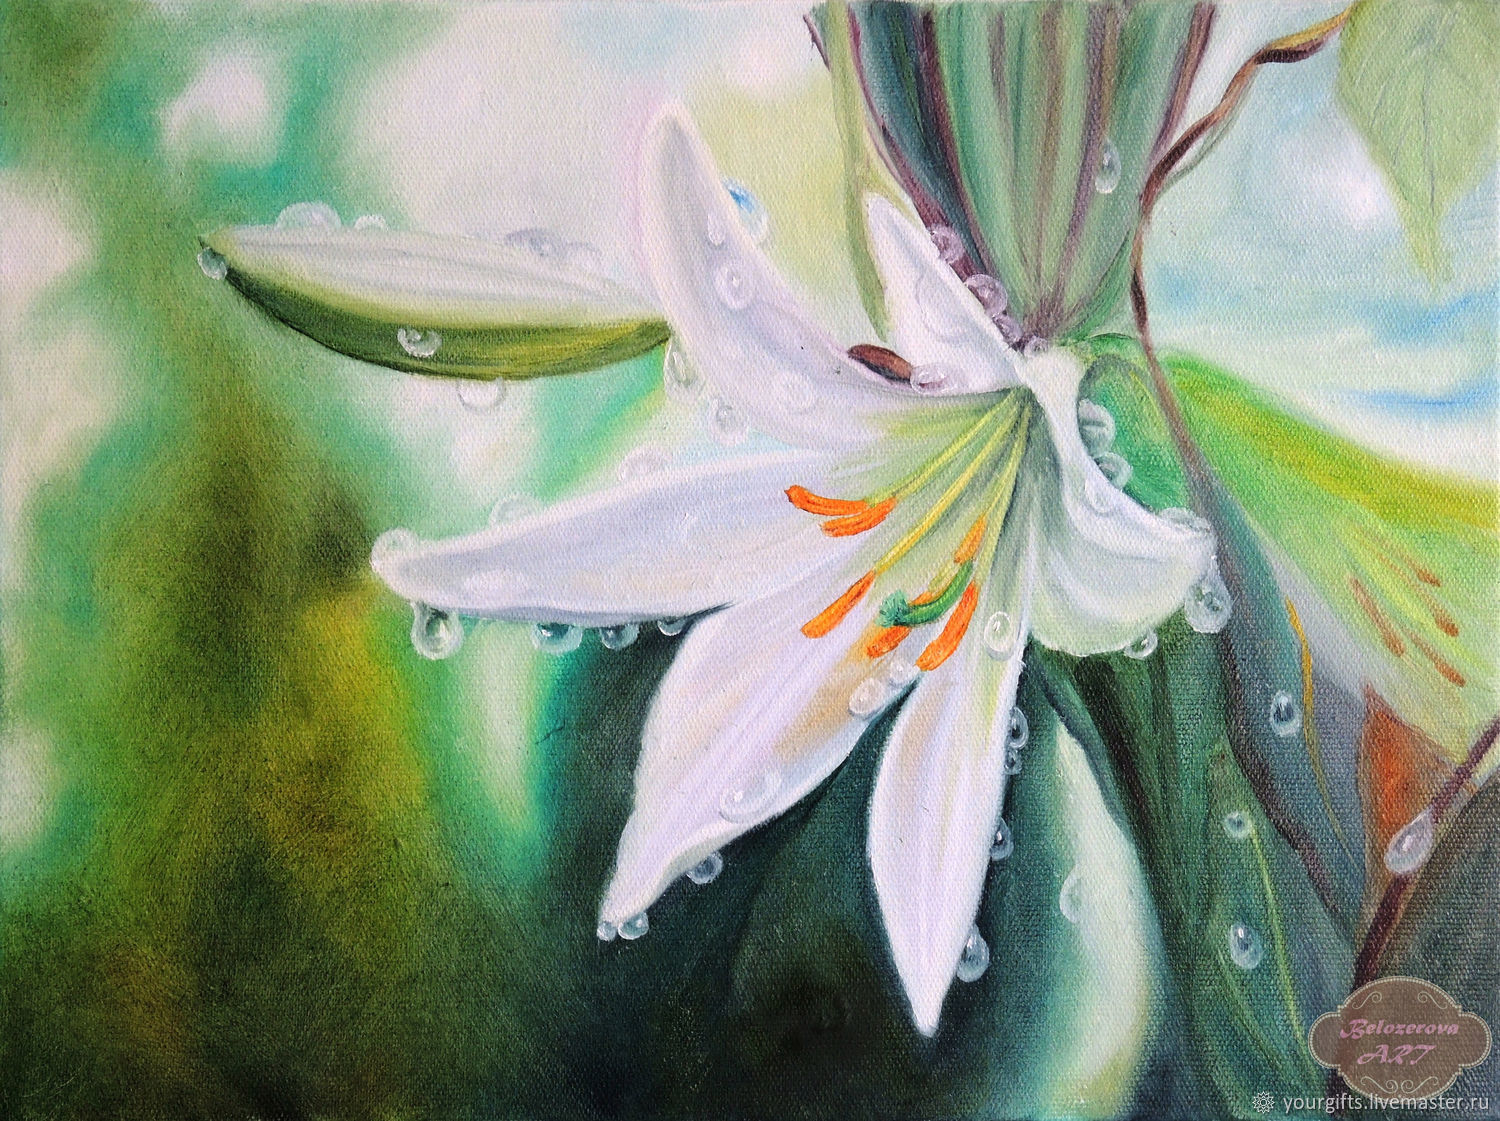 In The Morning Dew Oil Painting Shop Online On Livemaster With